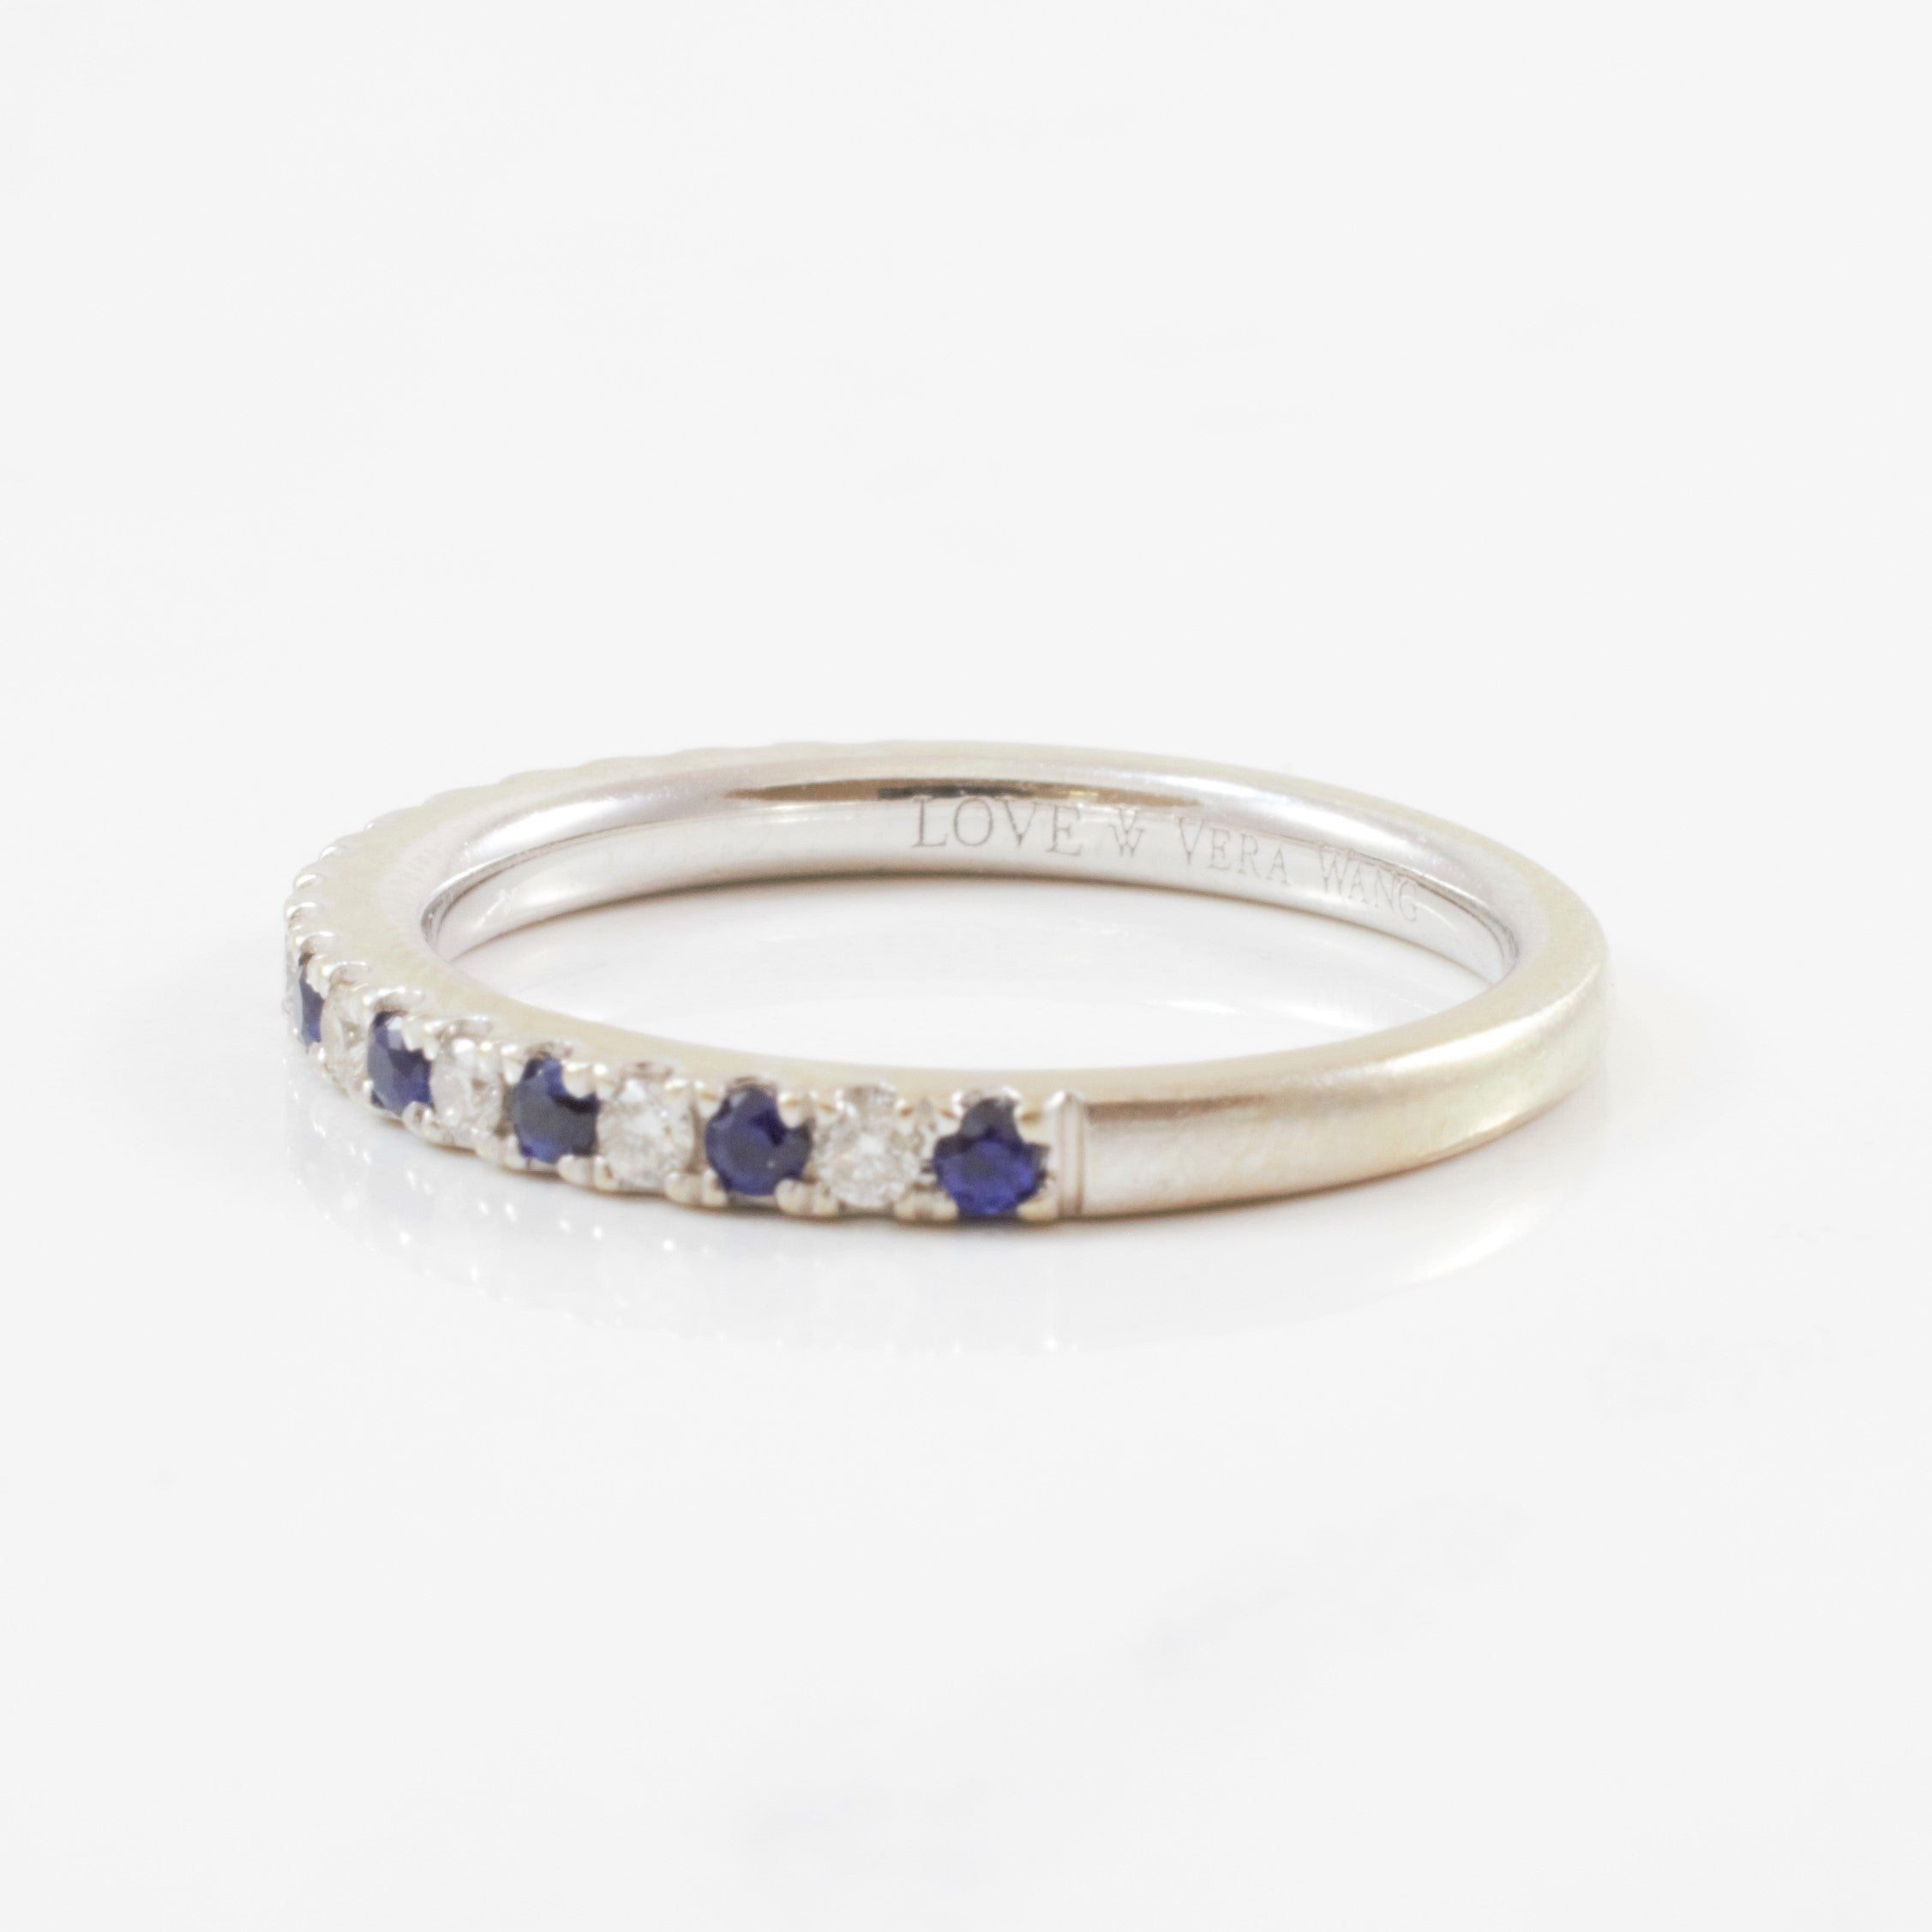 'Vera Wang' Alternating Diamond & Sapphire Band | 0.14ctw, 0.20ctw | SZ 6.5 |